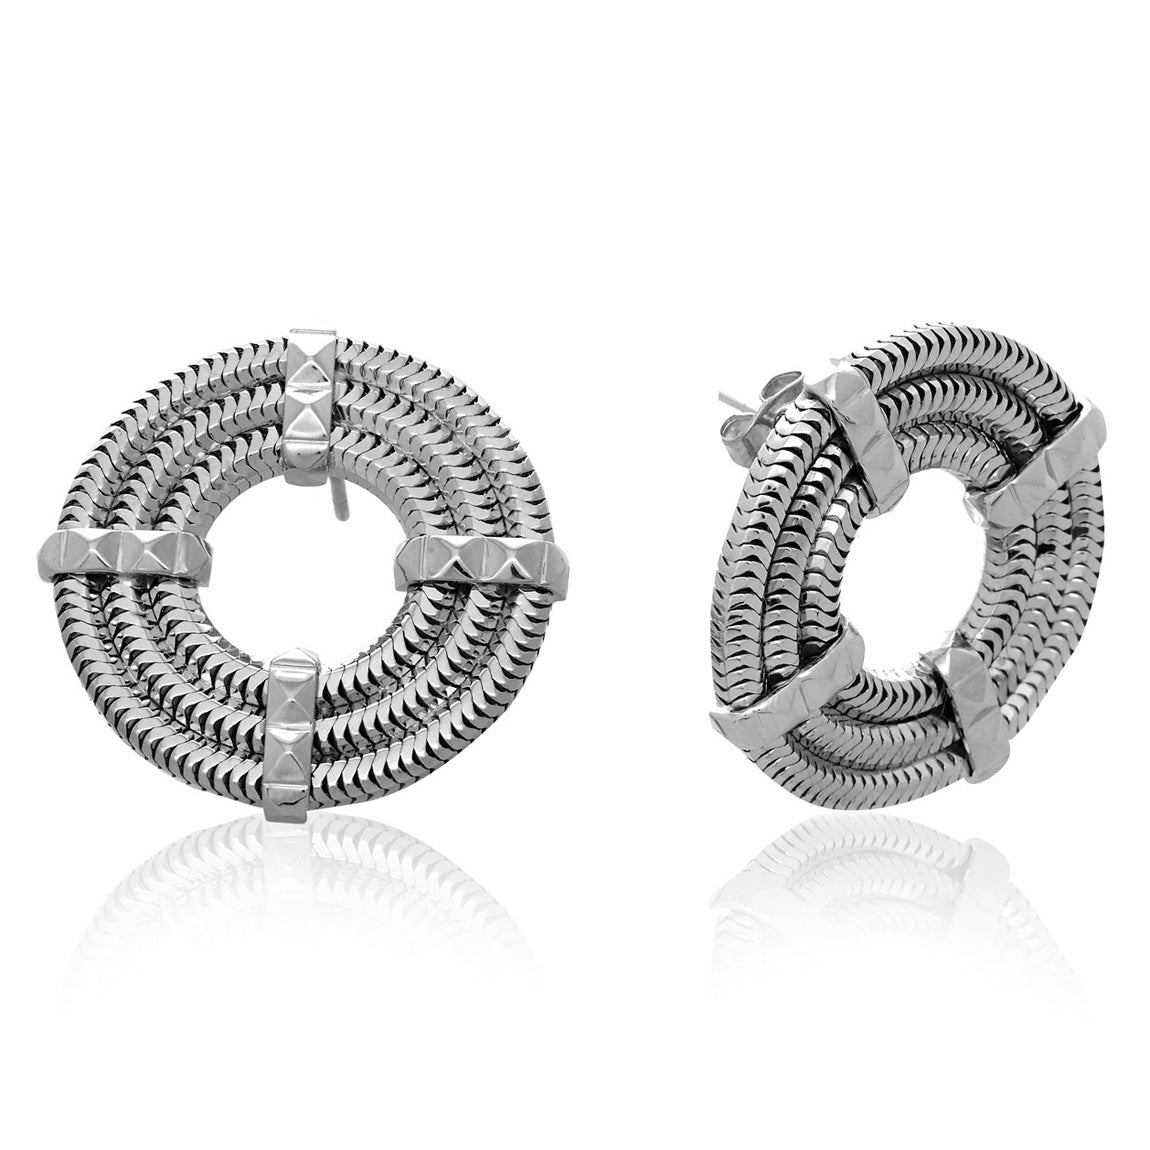 phab earrings designs simple platinum for men main women and jewellery latest articles detailmain